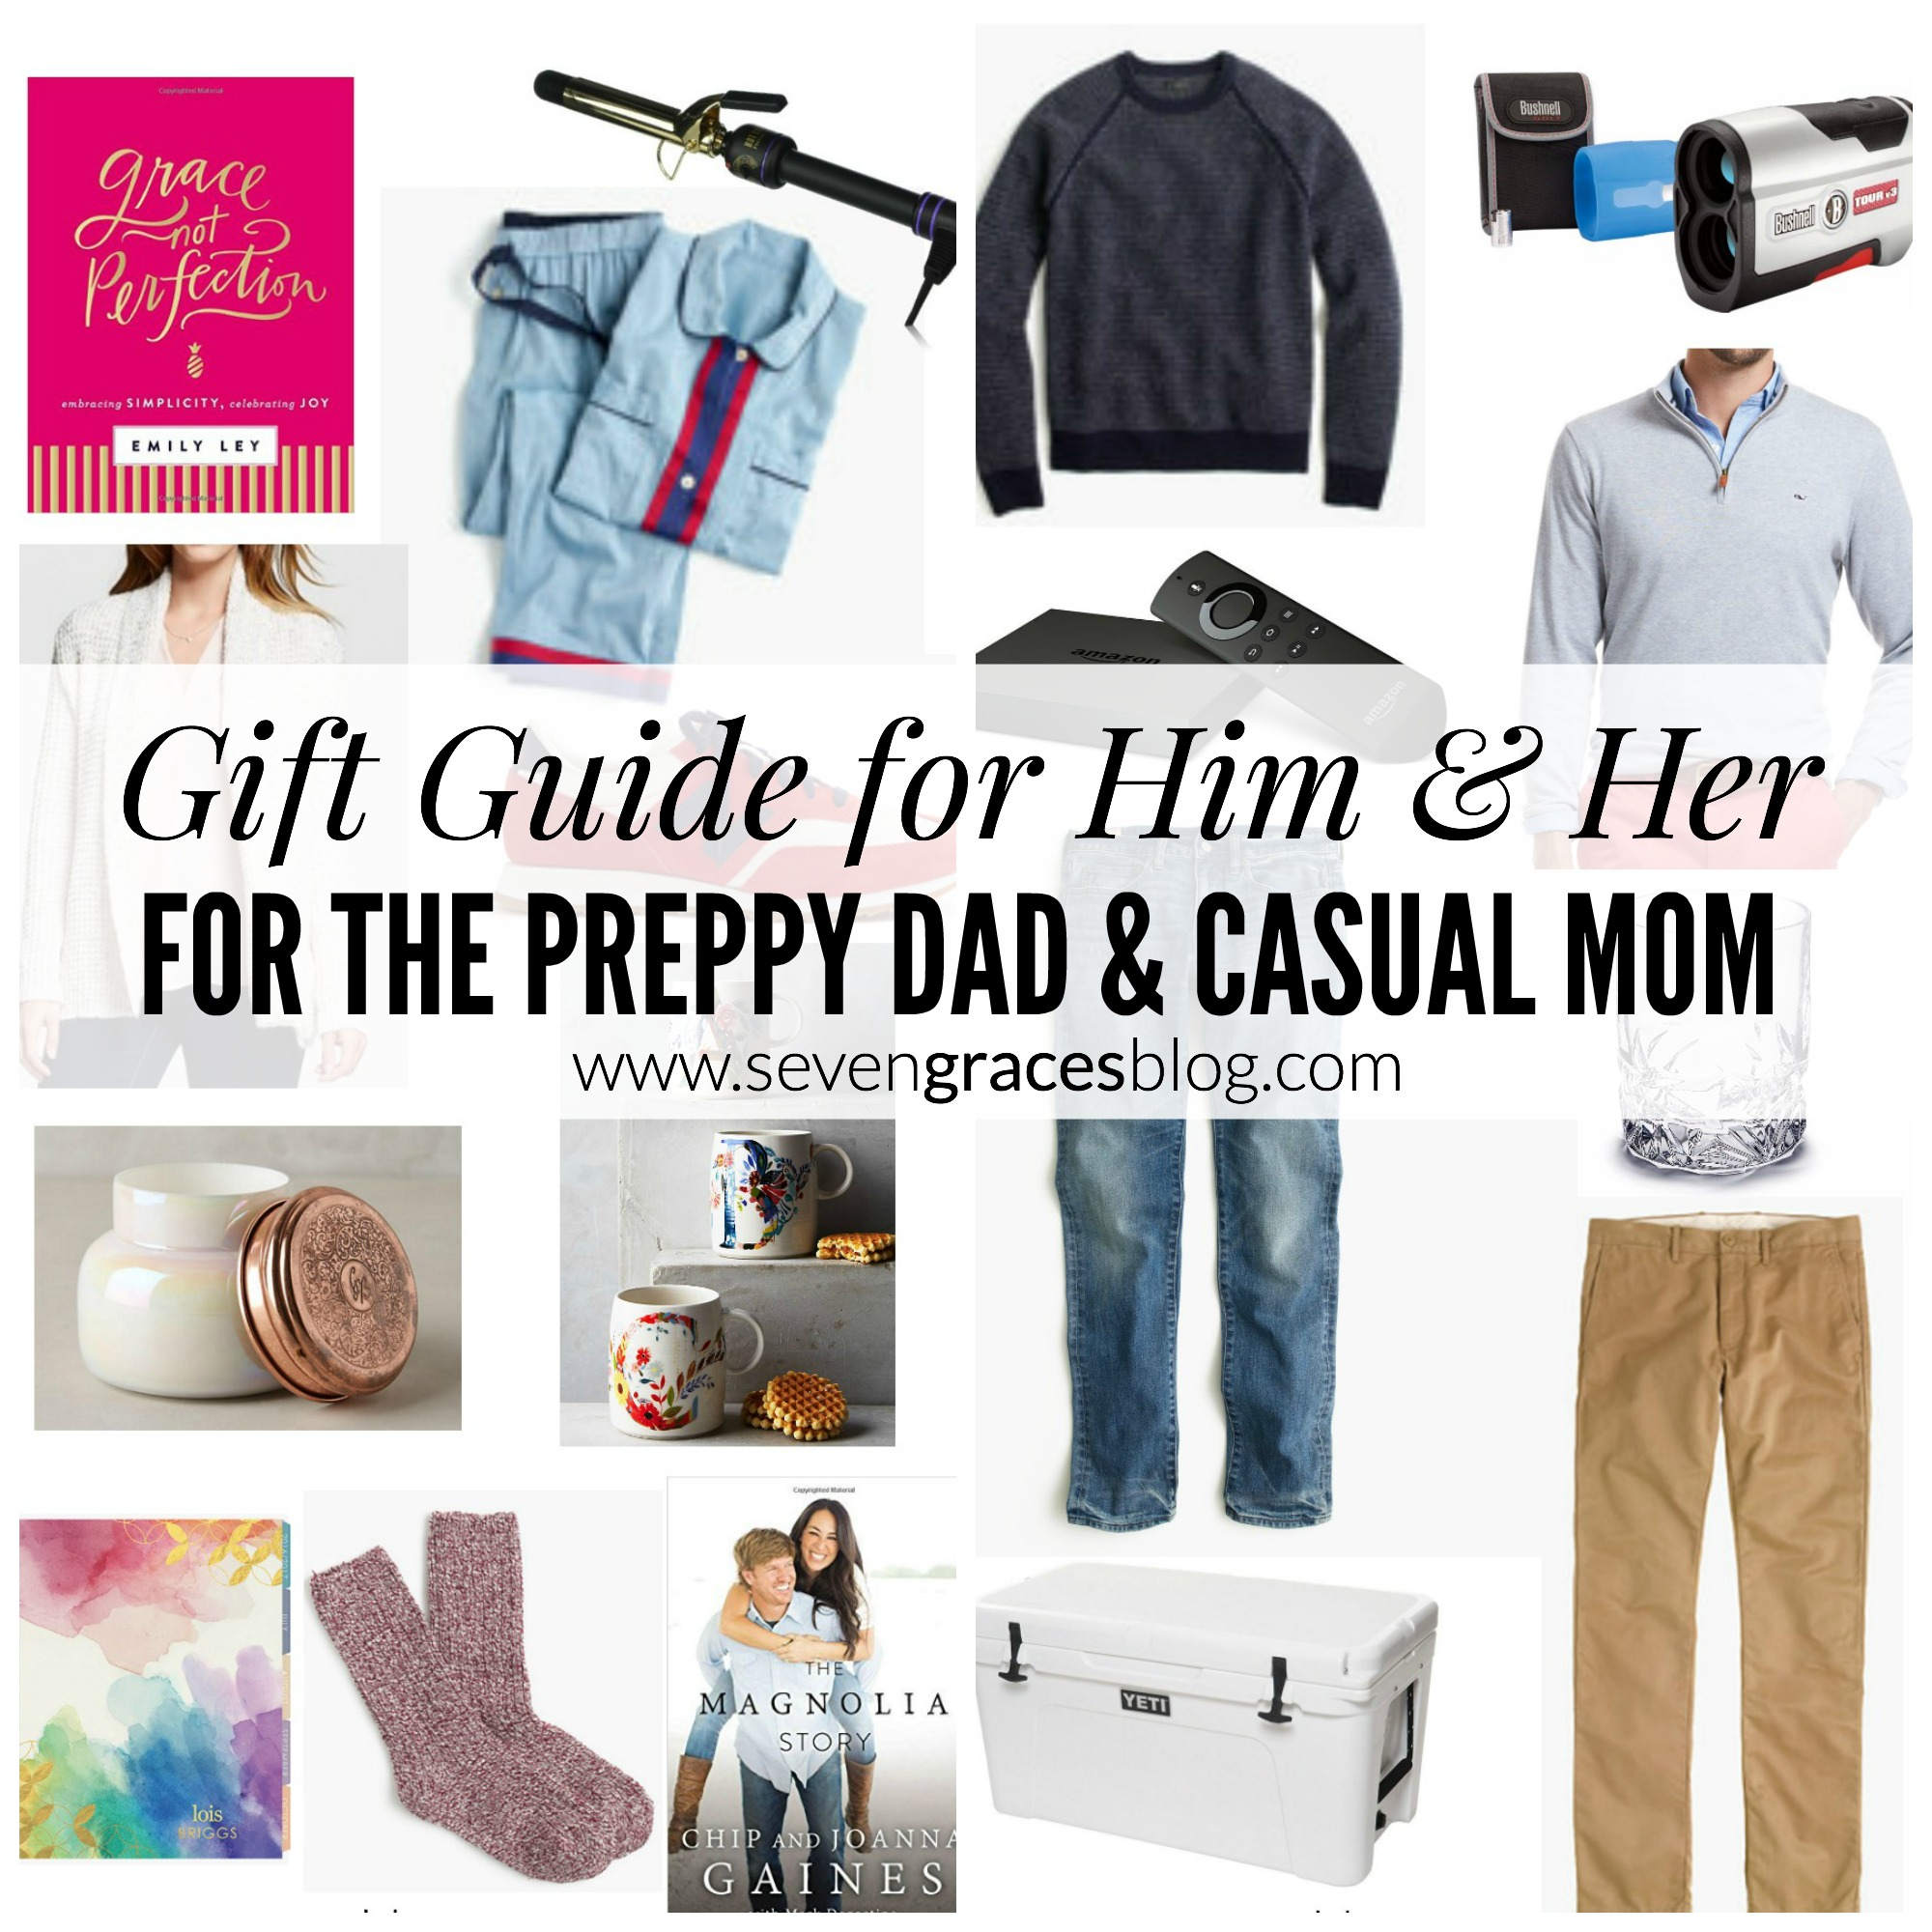 His & Her Gift Guides: For the Preppy Dad & Casual Mom